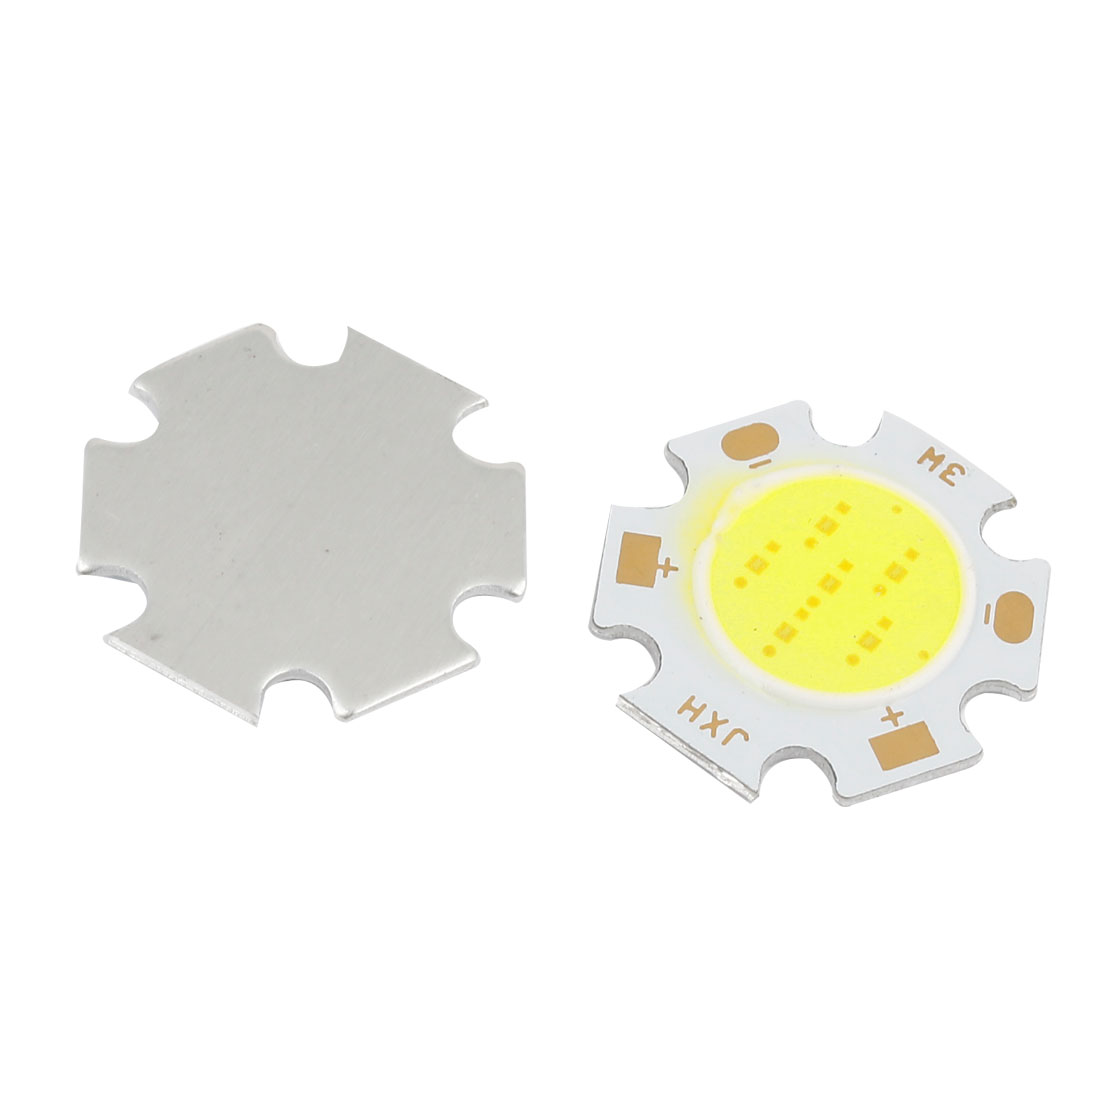 2 Pcs DC 10-12V 3W COB White LED Instrument Panel Light Internal